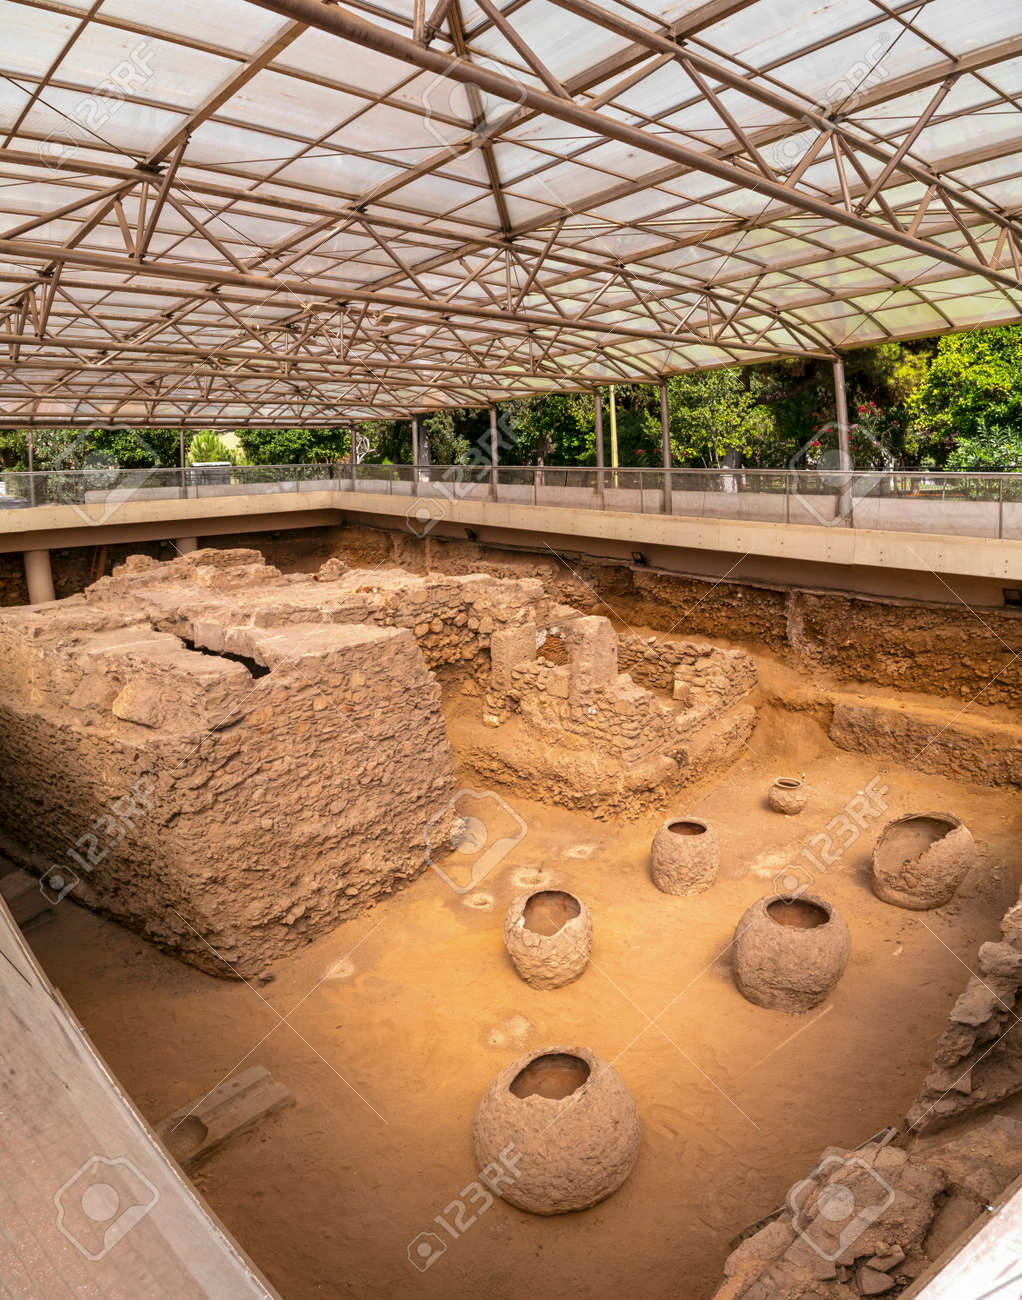 Third Ephorate of Athens Antiquities during the reign of emperor Hadrian.Excavated archaeological site of a roman bath house in Athens near the Ilissos river. - 117735293